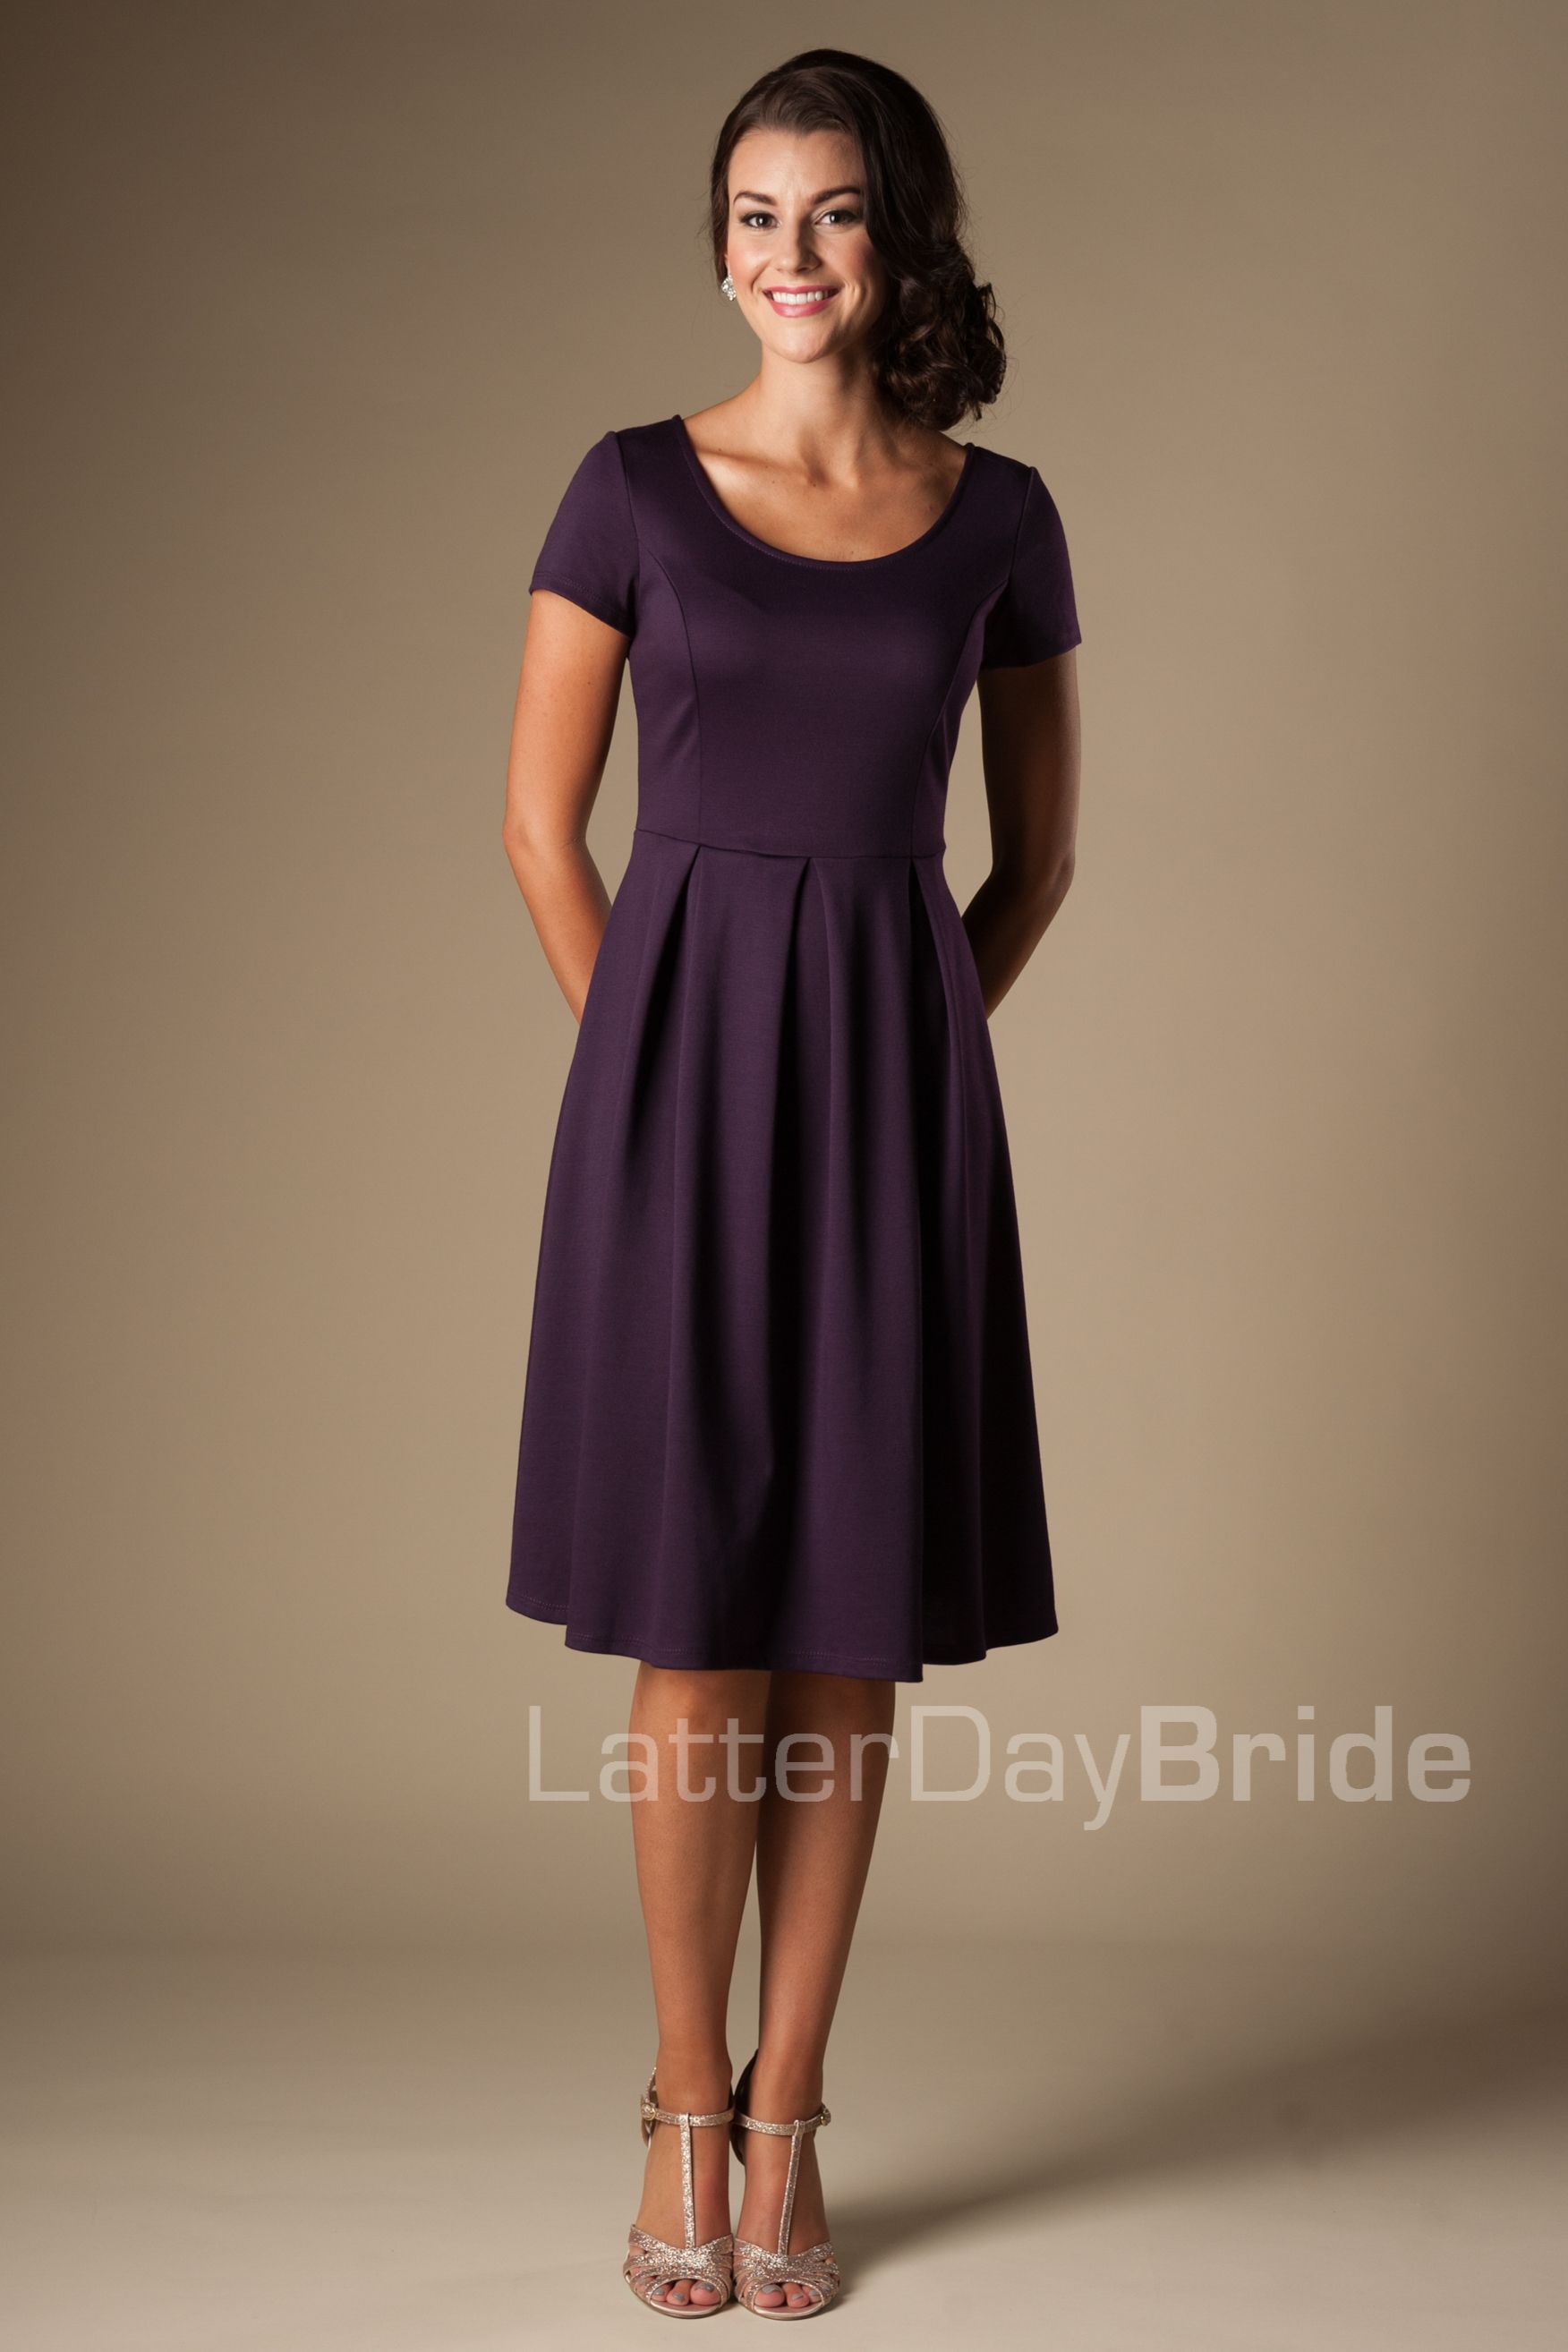 Modest bridesmaid dress mw22070 purple frontg wedding modest bridesmaid dress mw22070 purple frontg ombrellifo Gallery